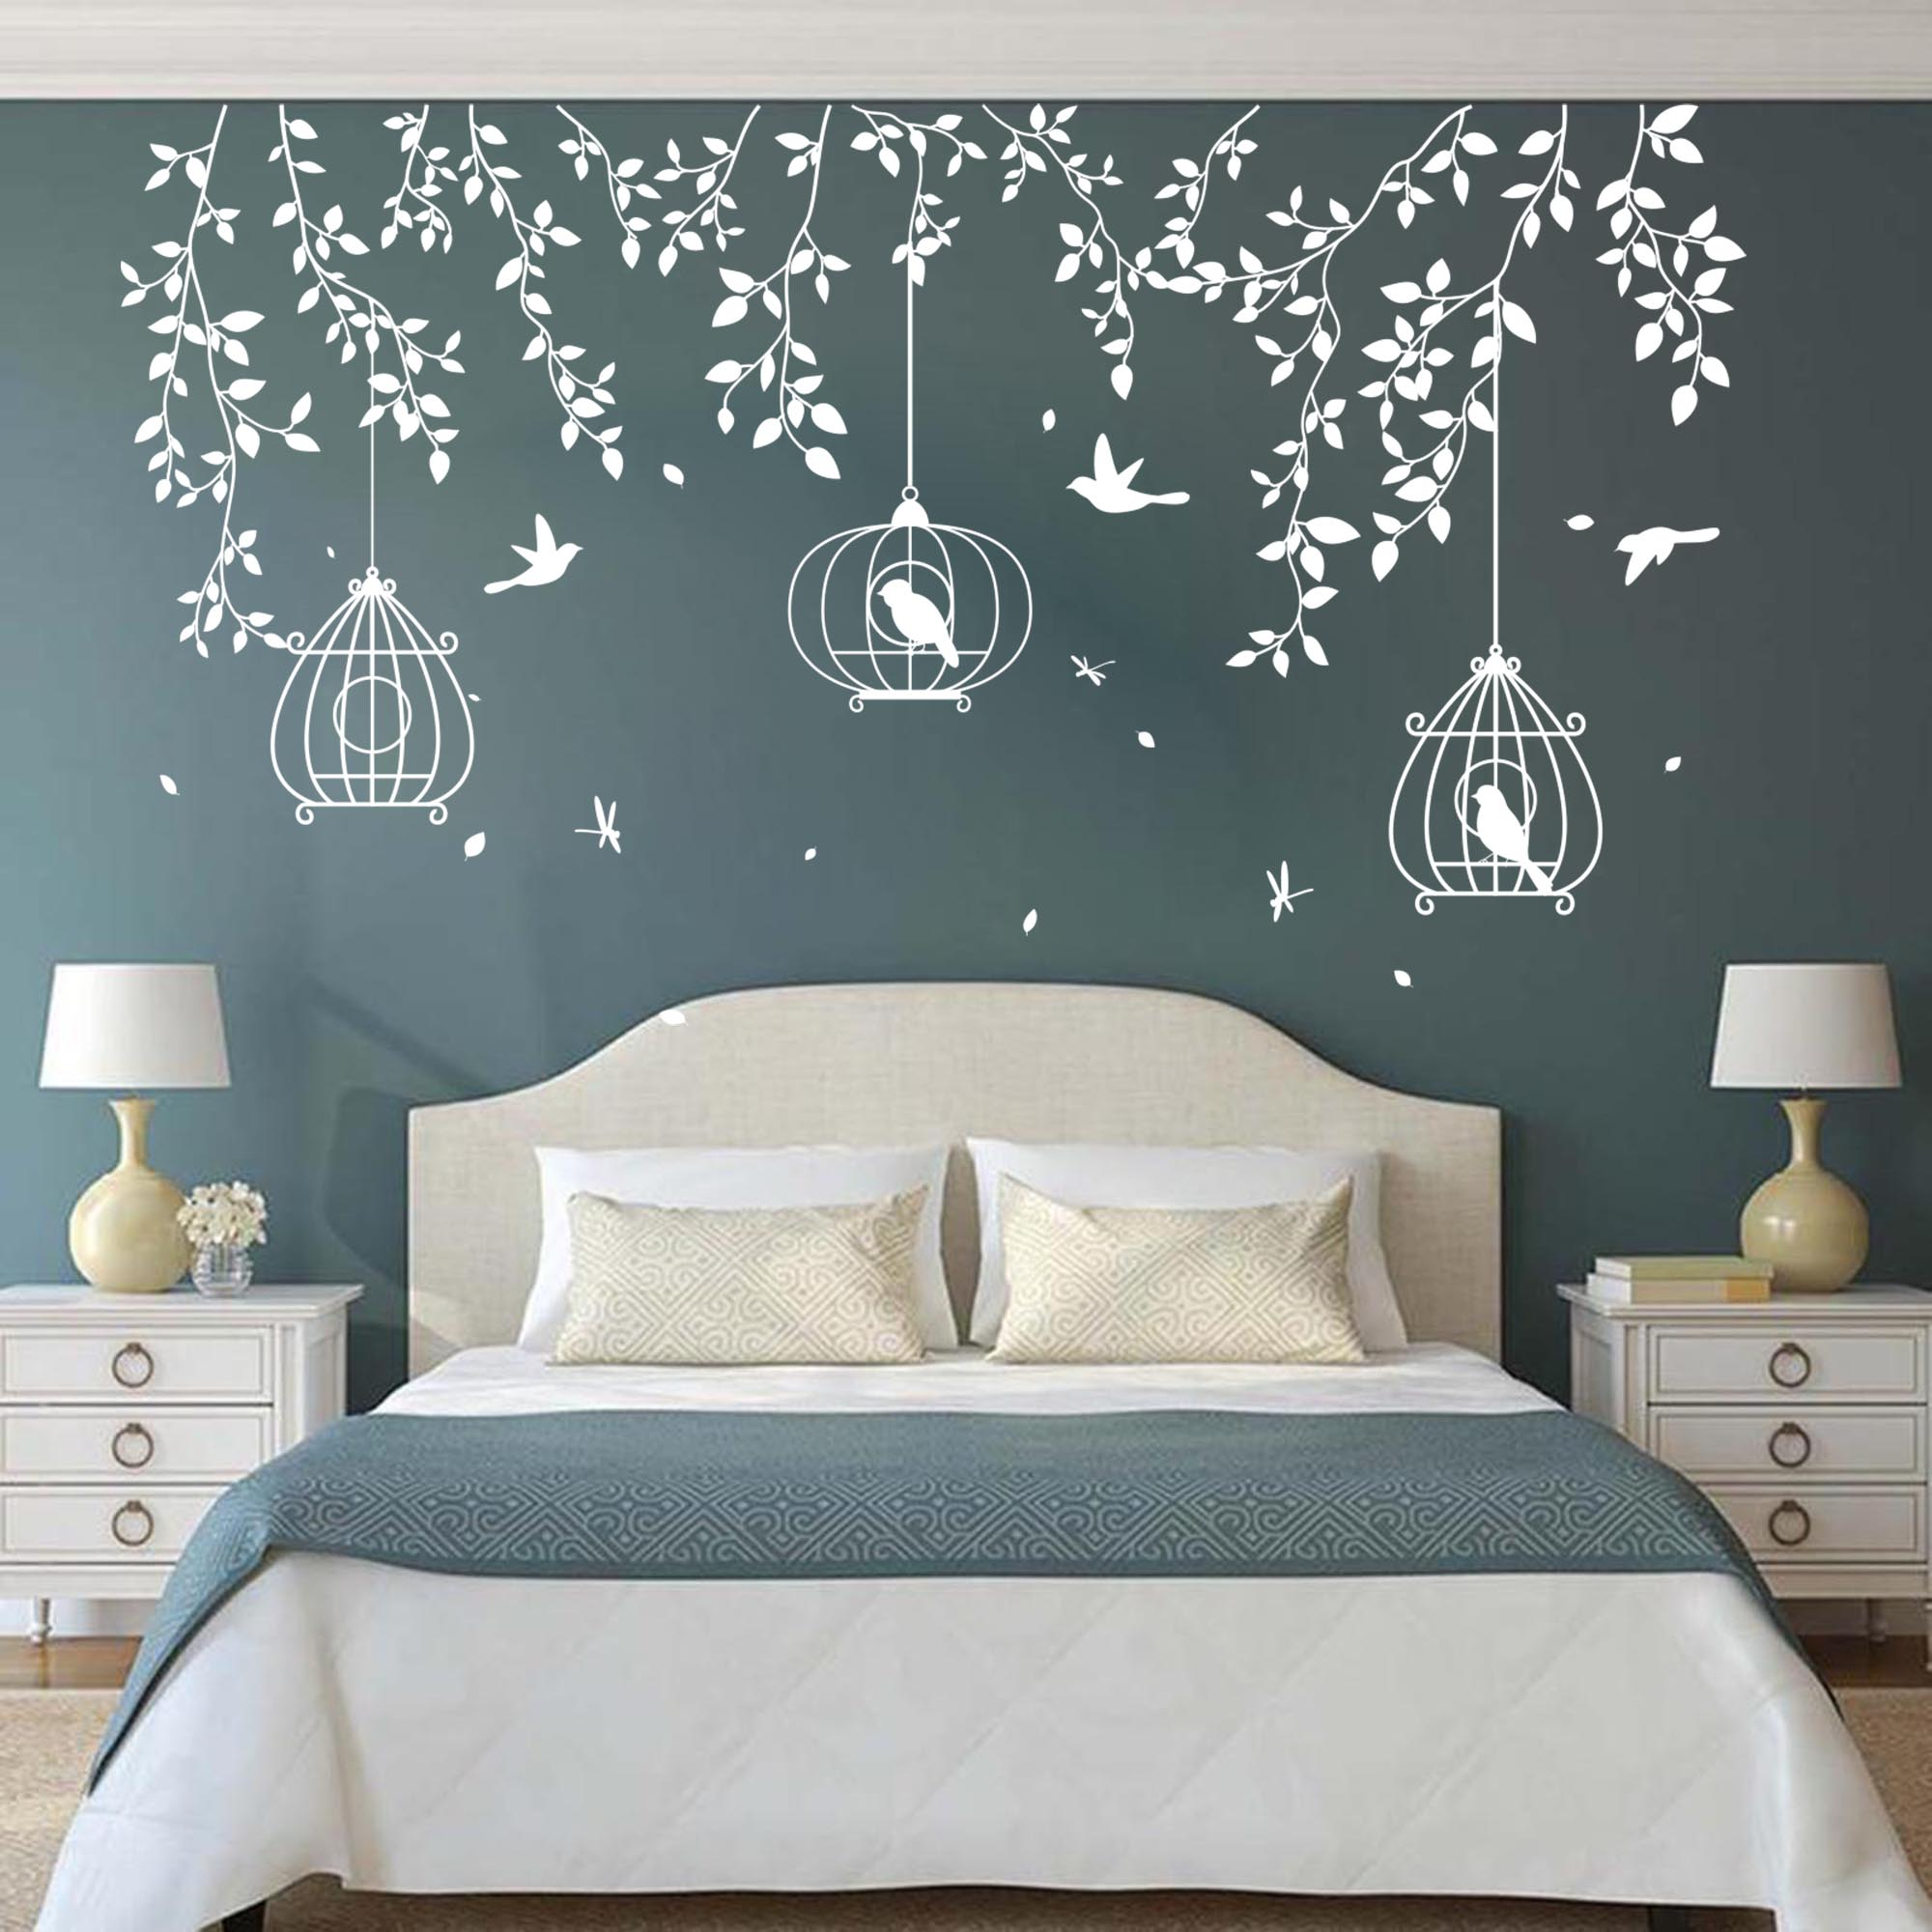 Large Tree Birdcage Leaves Wall Sticker Bedroom Sofa Forest Nature Leaves Birds Animal Branch Wall Decal Living Room Vinyl Decor Wall Stickers Aliexpress